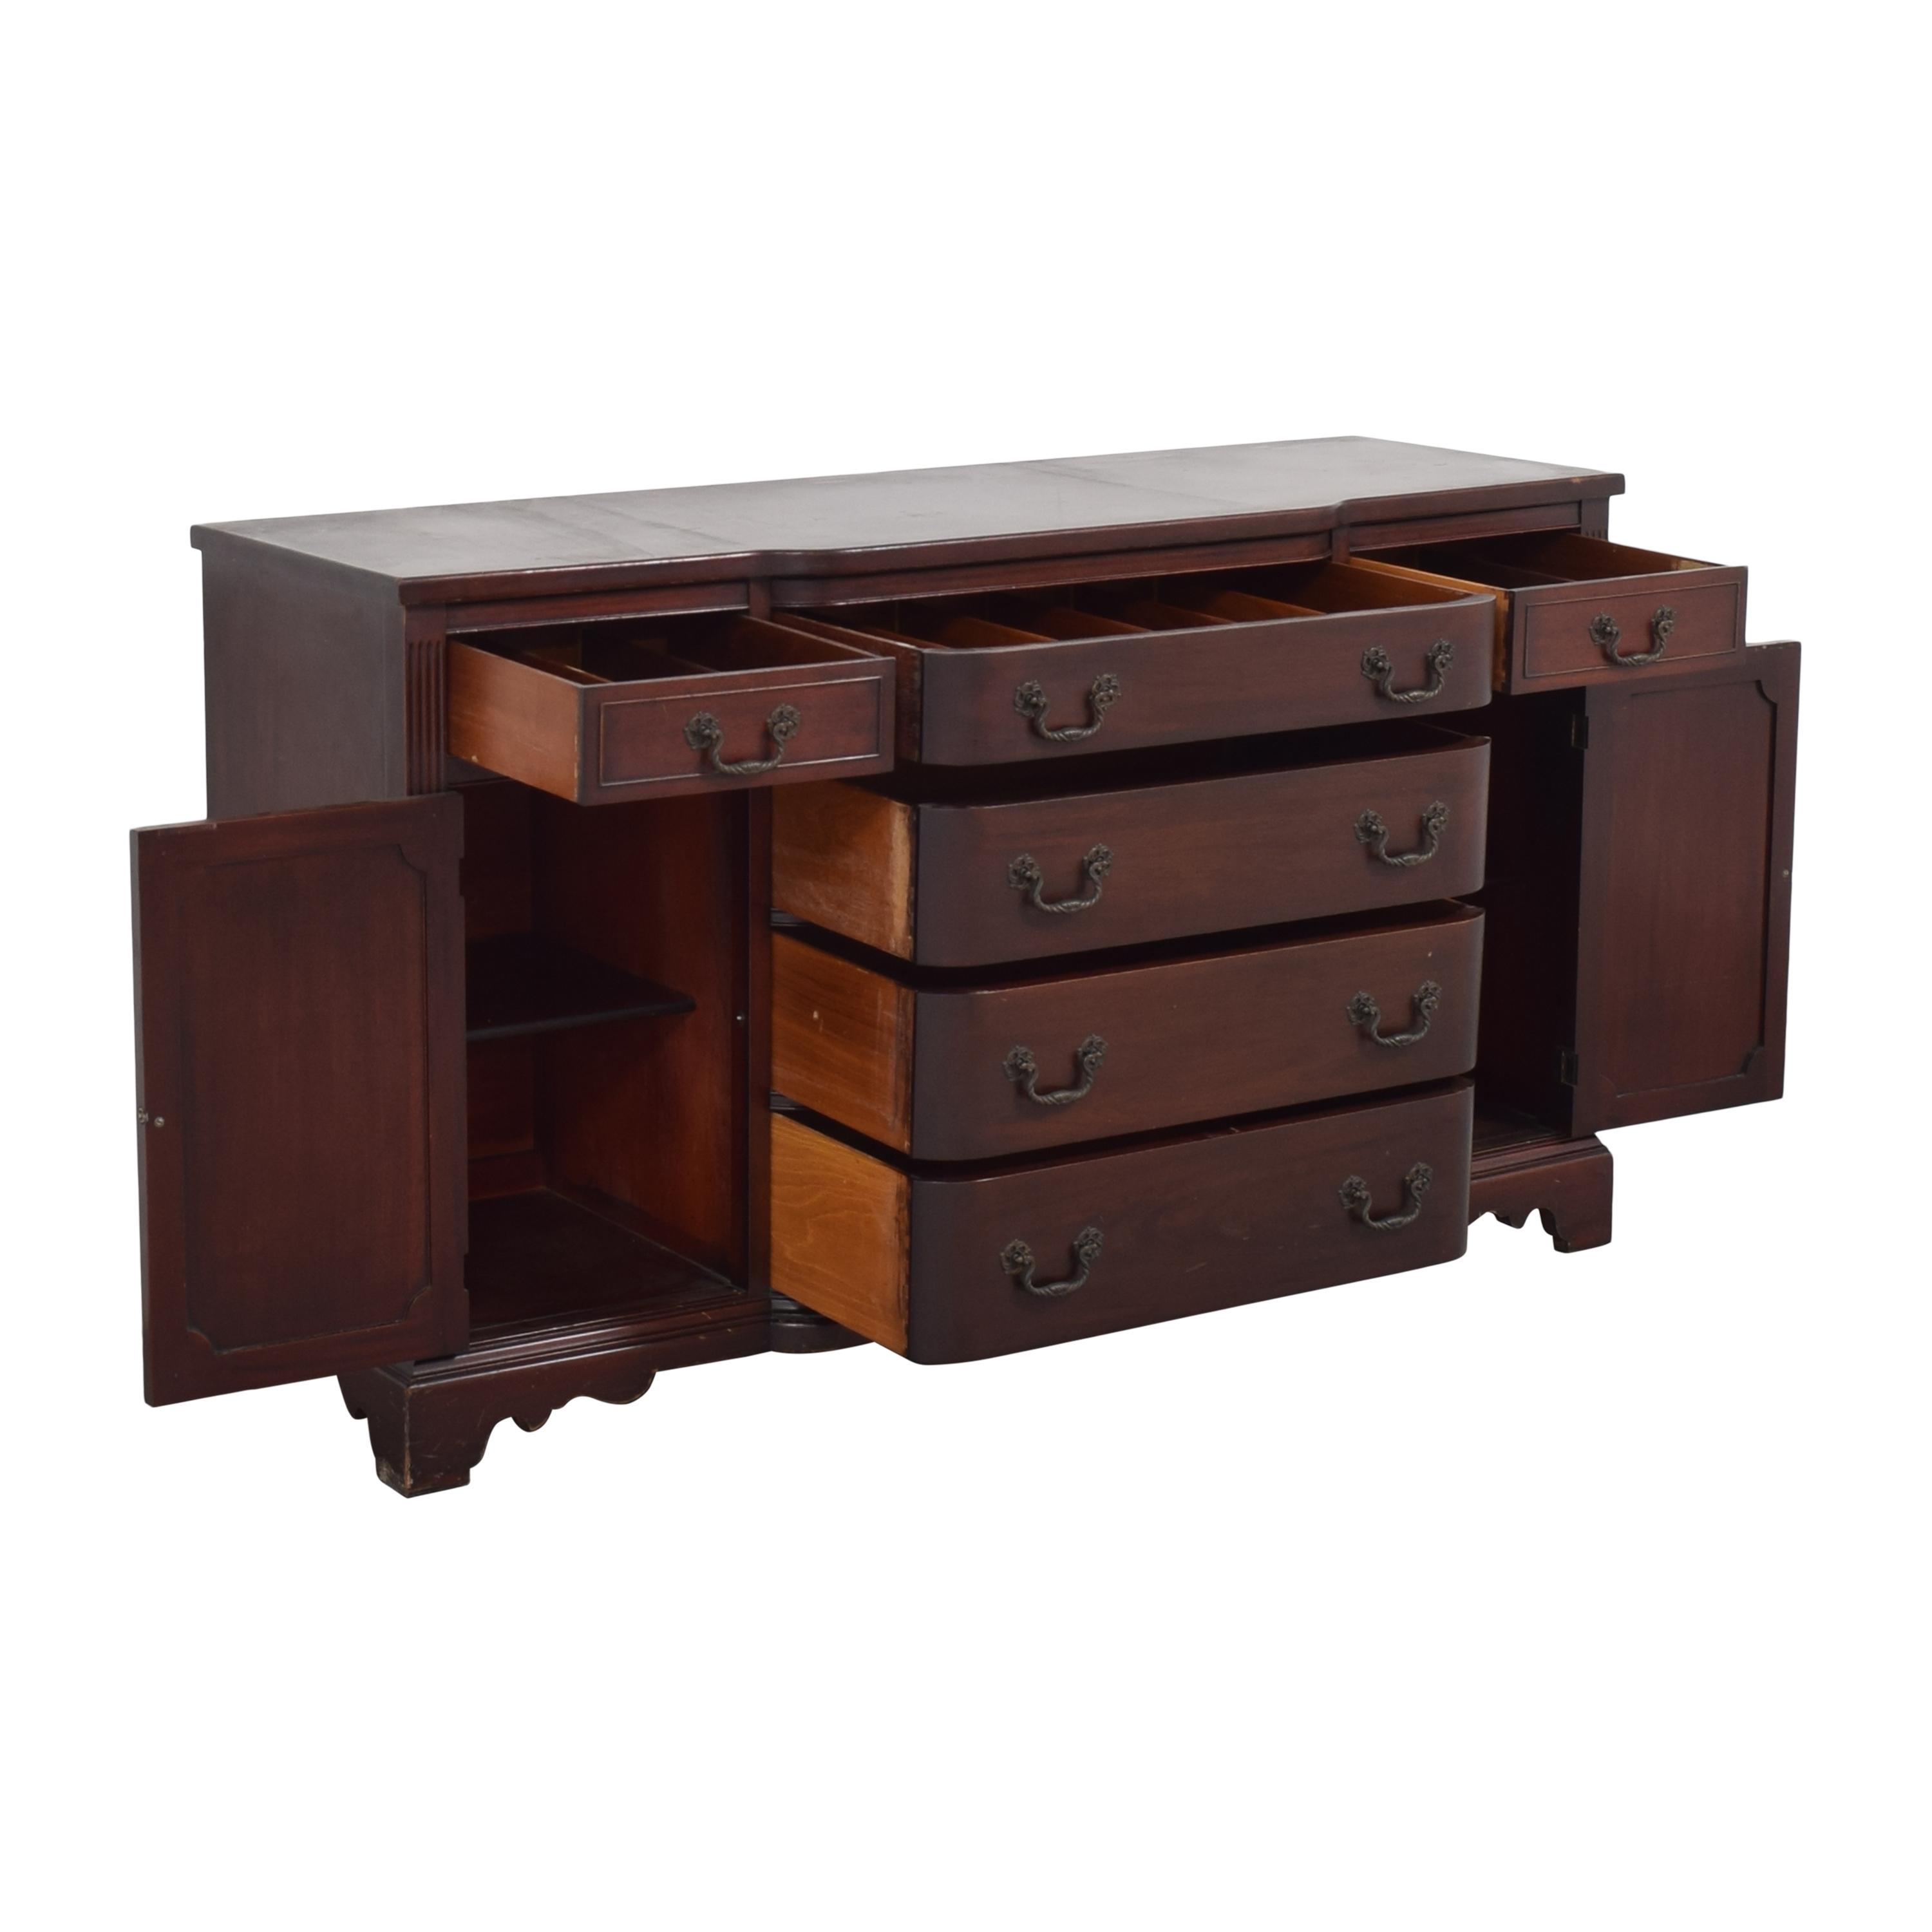 Ritter Georgetown Galleries by Ritter Sideboard Buffet dimensions